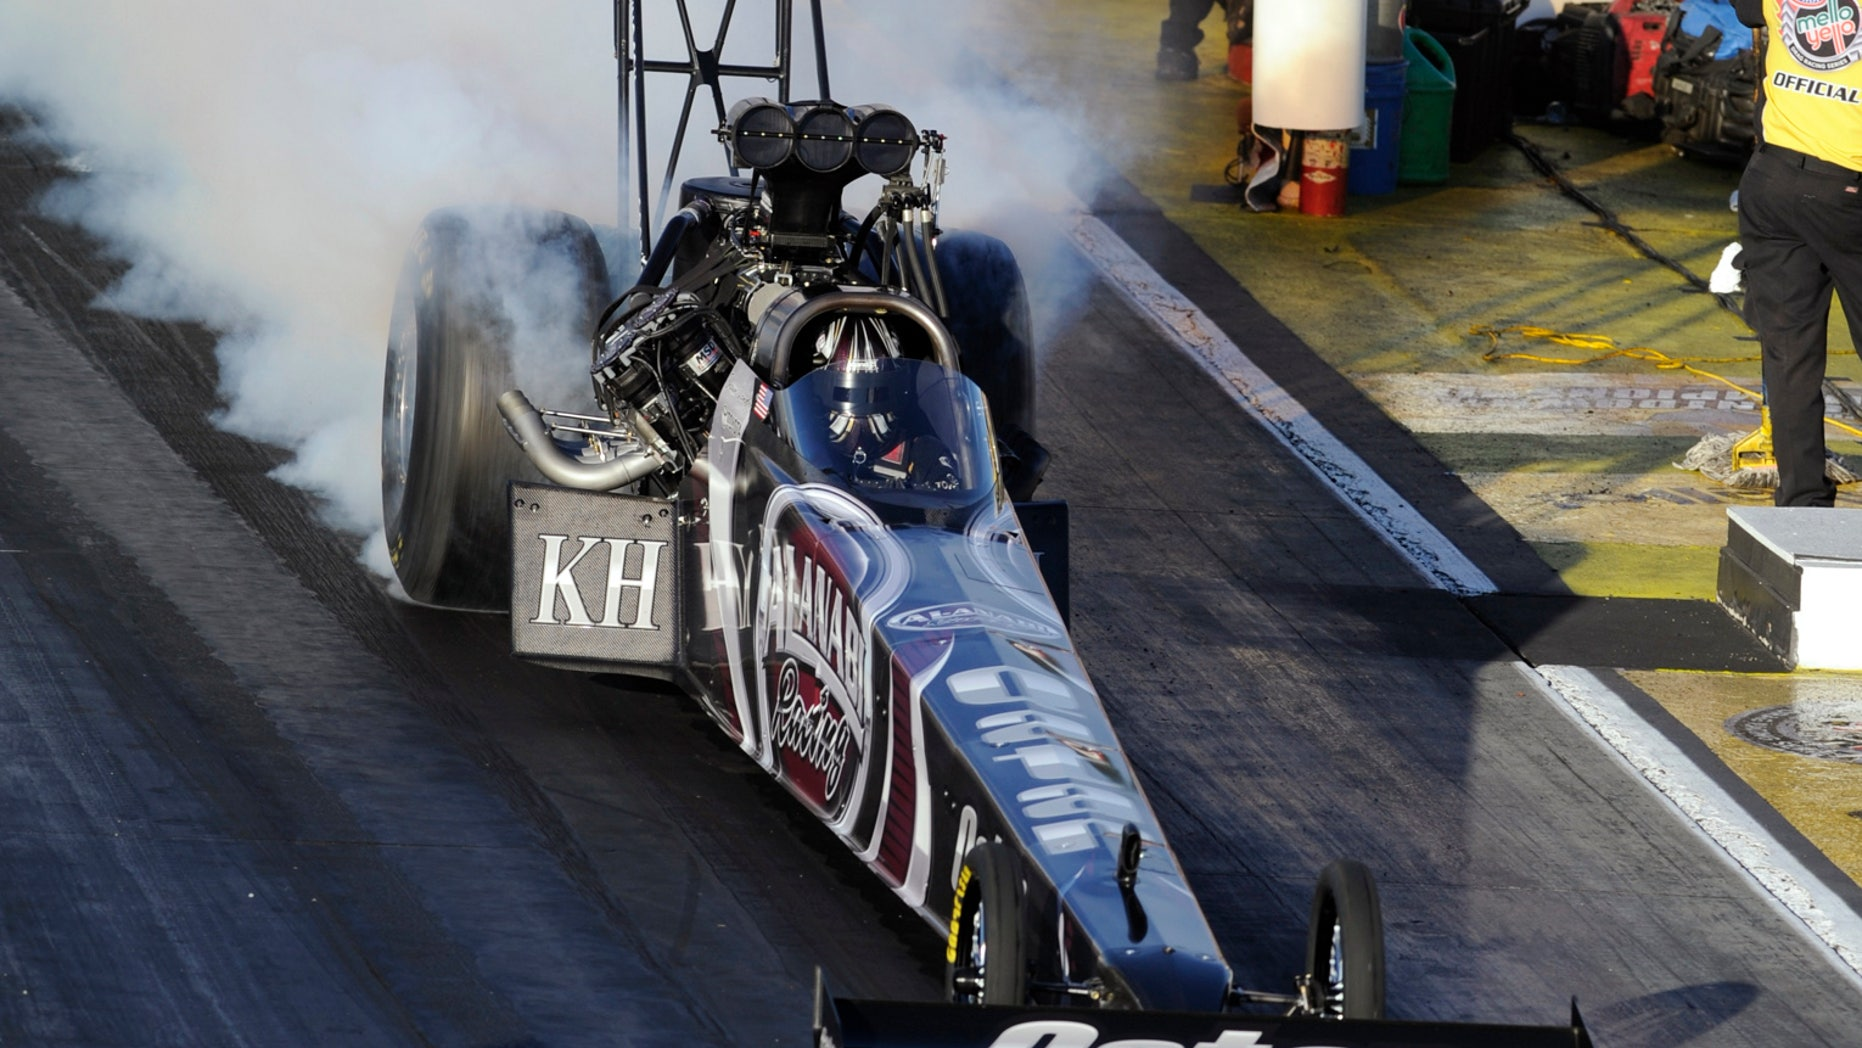 In this photo provided by NHRA, Shawn Langdon does a burnout in his Top Fuel dragster during qualifying on Thursday, Nov. 7, 2013, at Auto Club Raceway in Pomona, Calif., for the final event of the NHRA drag racing season. He topped the Top Fuel field with a performance of 3.772 seconds at 322.27 mph. (AP Photo/NHRA, Marc Gewertz)